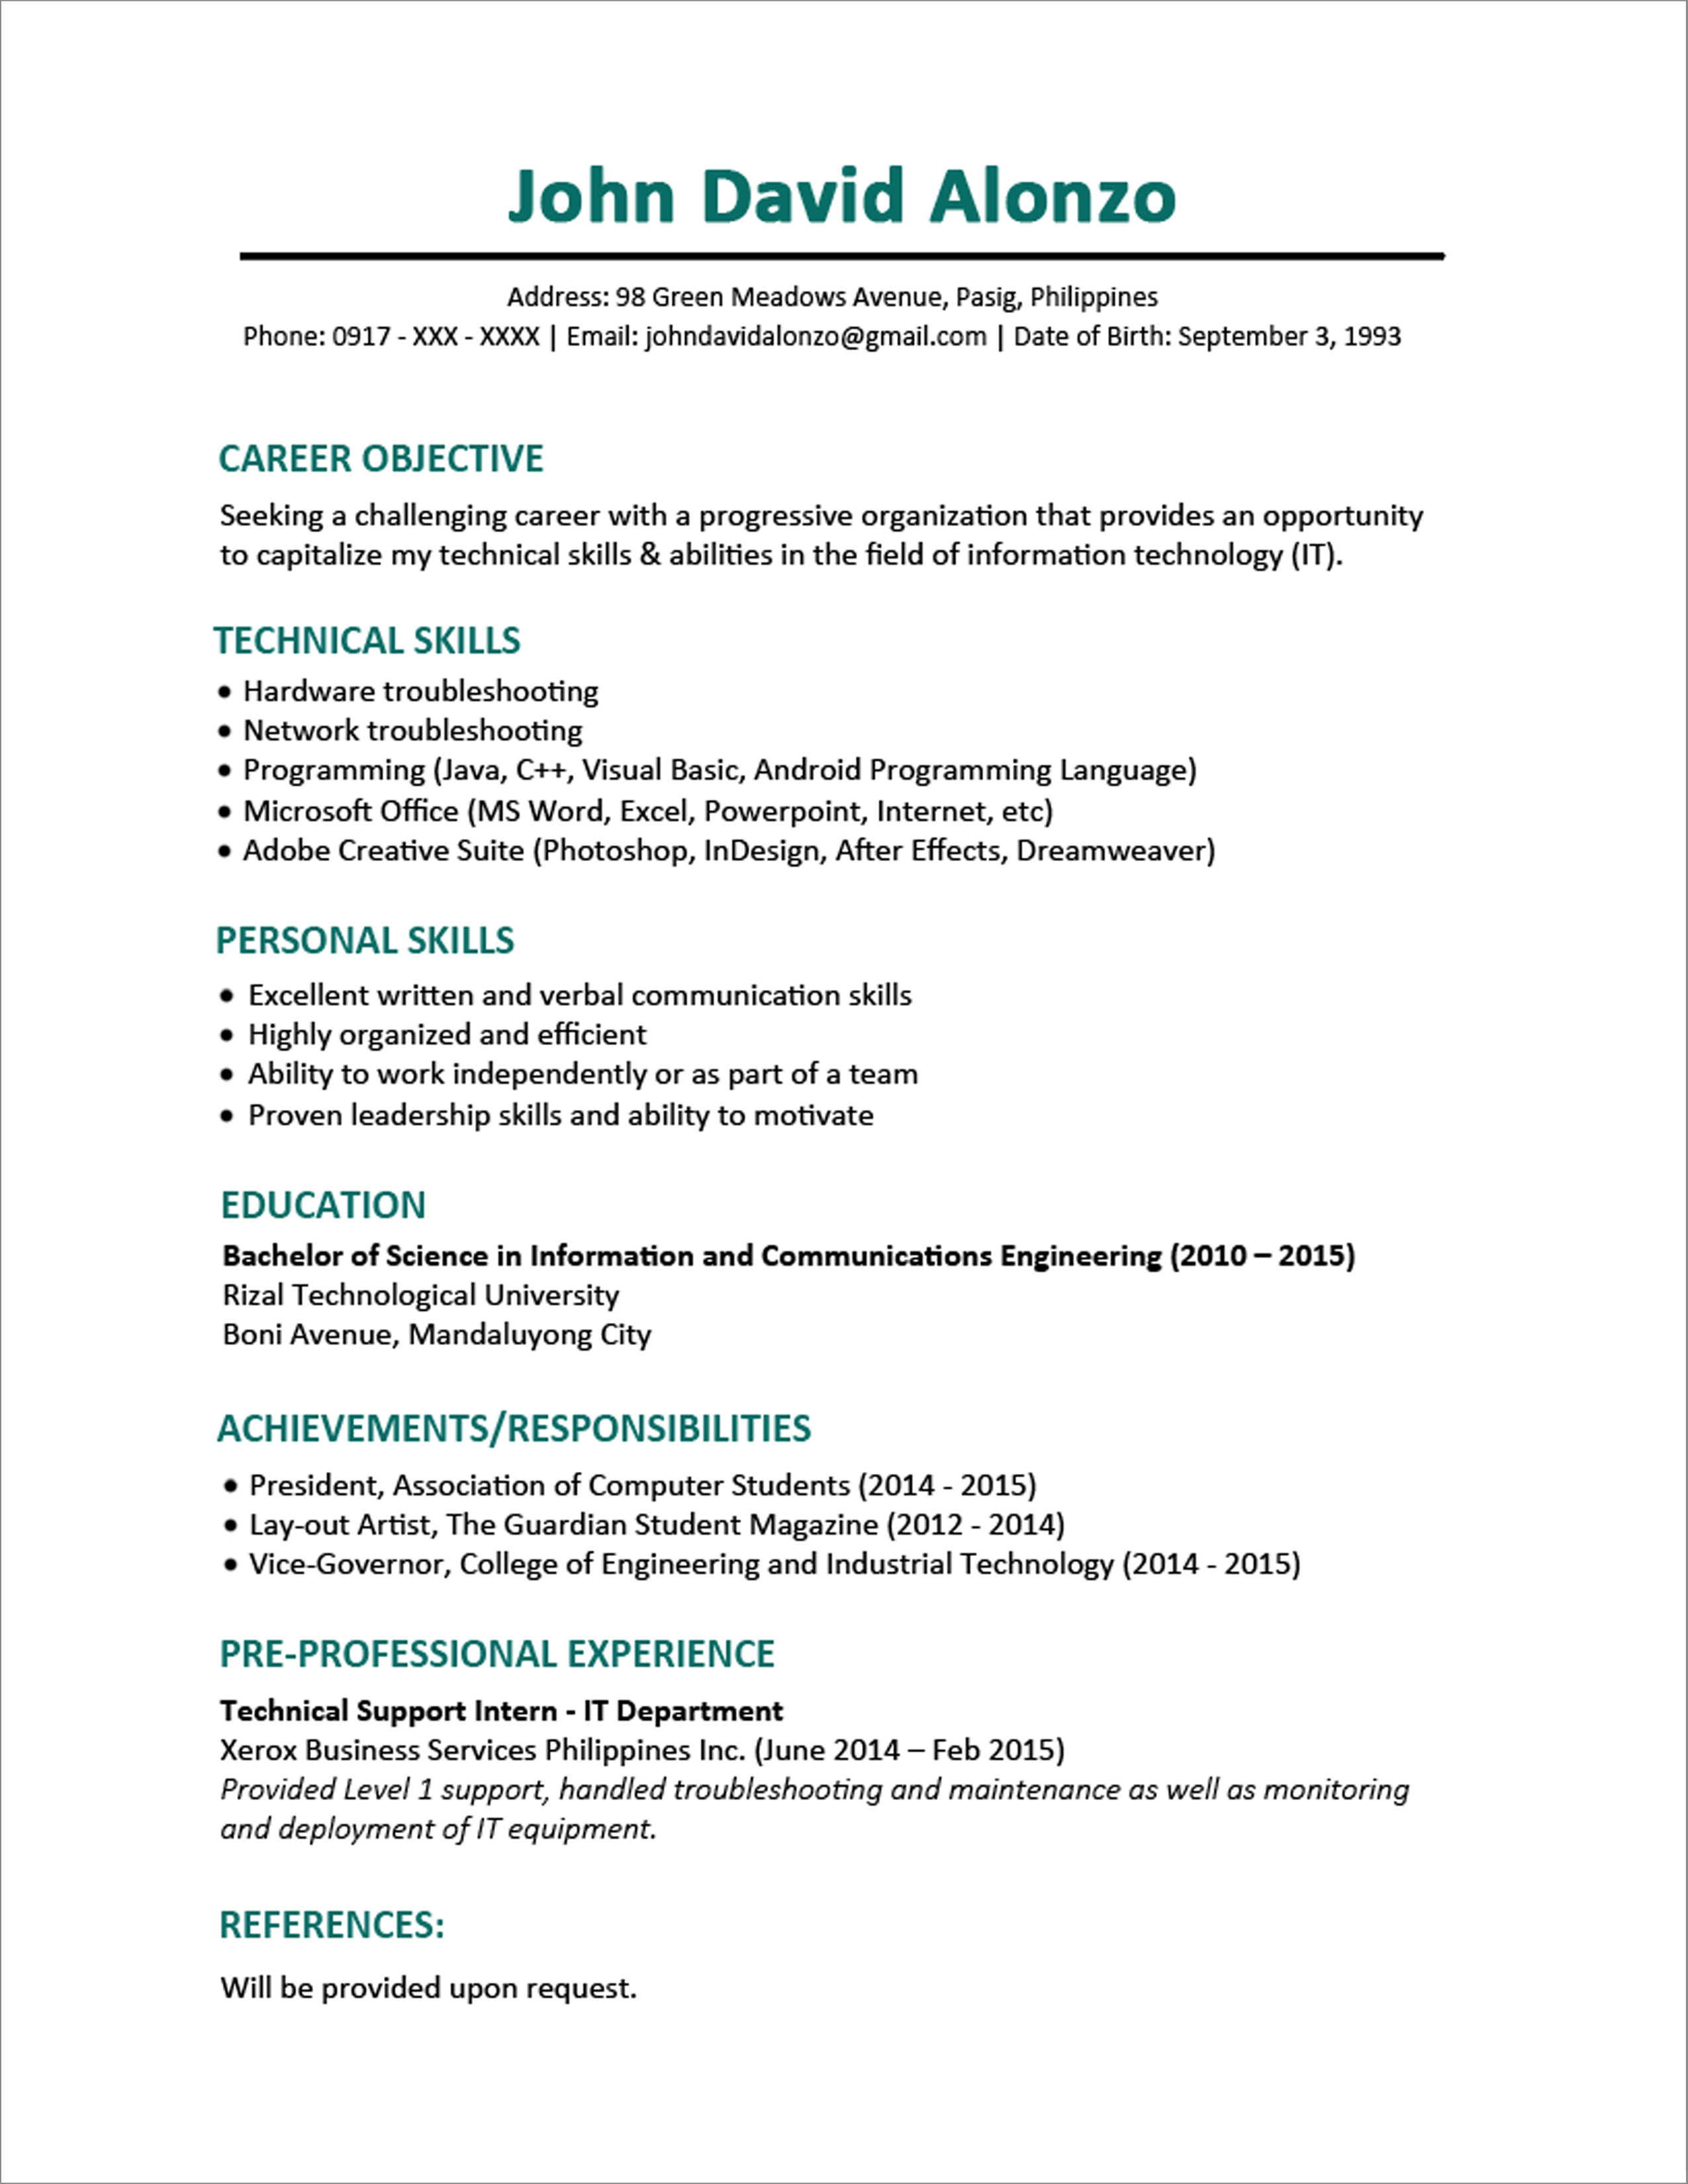 3 Page Resume Format For Freshers Resume Format Resume Objective Examples Resume Skills Resume Examples